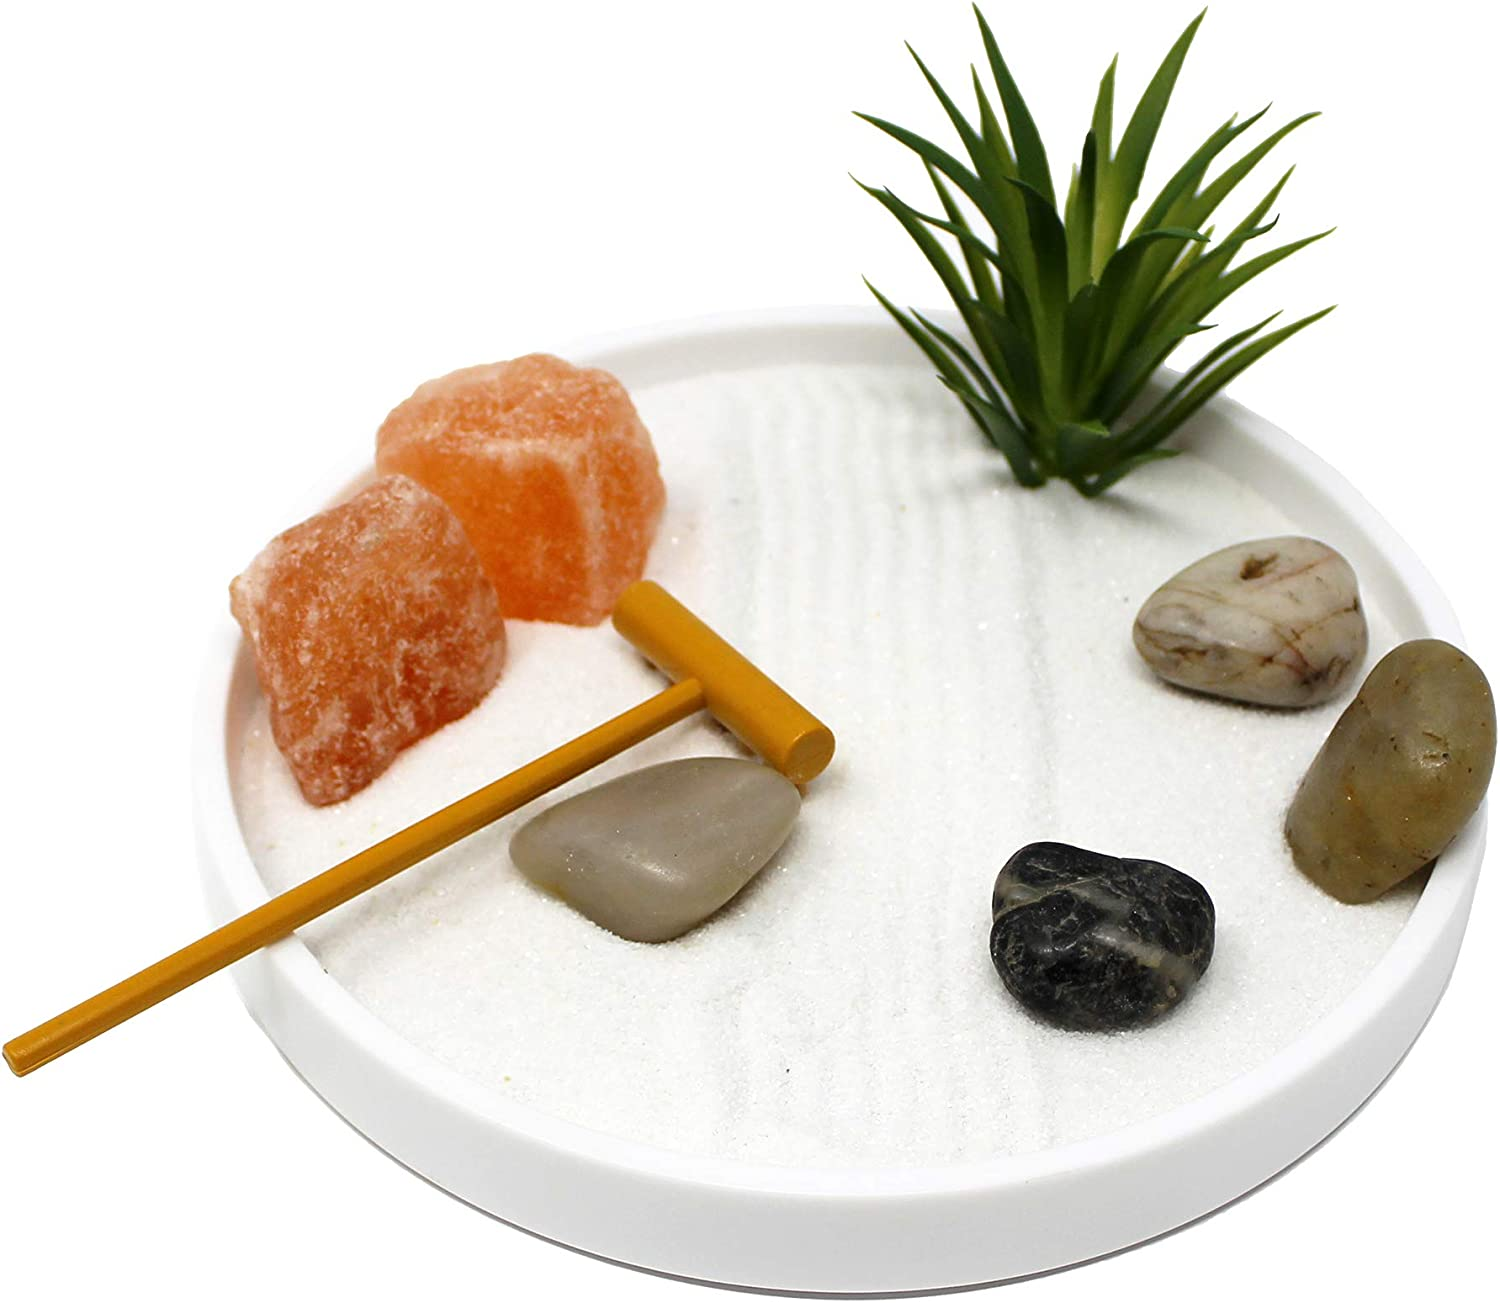 "Nature's Mark, Mini Meditation Zen Garden Table Decor Kit, 6 x 6 Inches White Round Base with Salt Rocks, Air Plant, and Natural River Rocks (6"" L x 6"" W)"